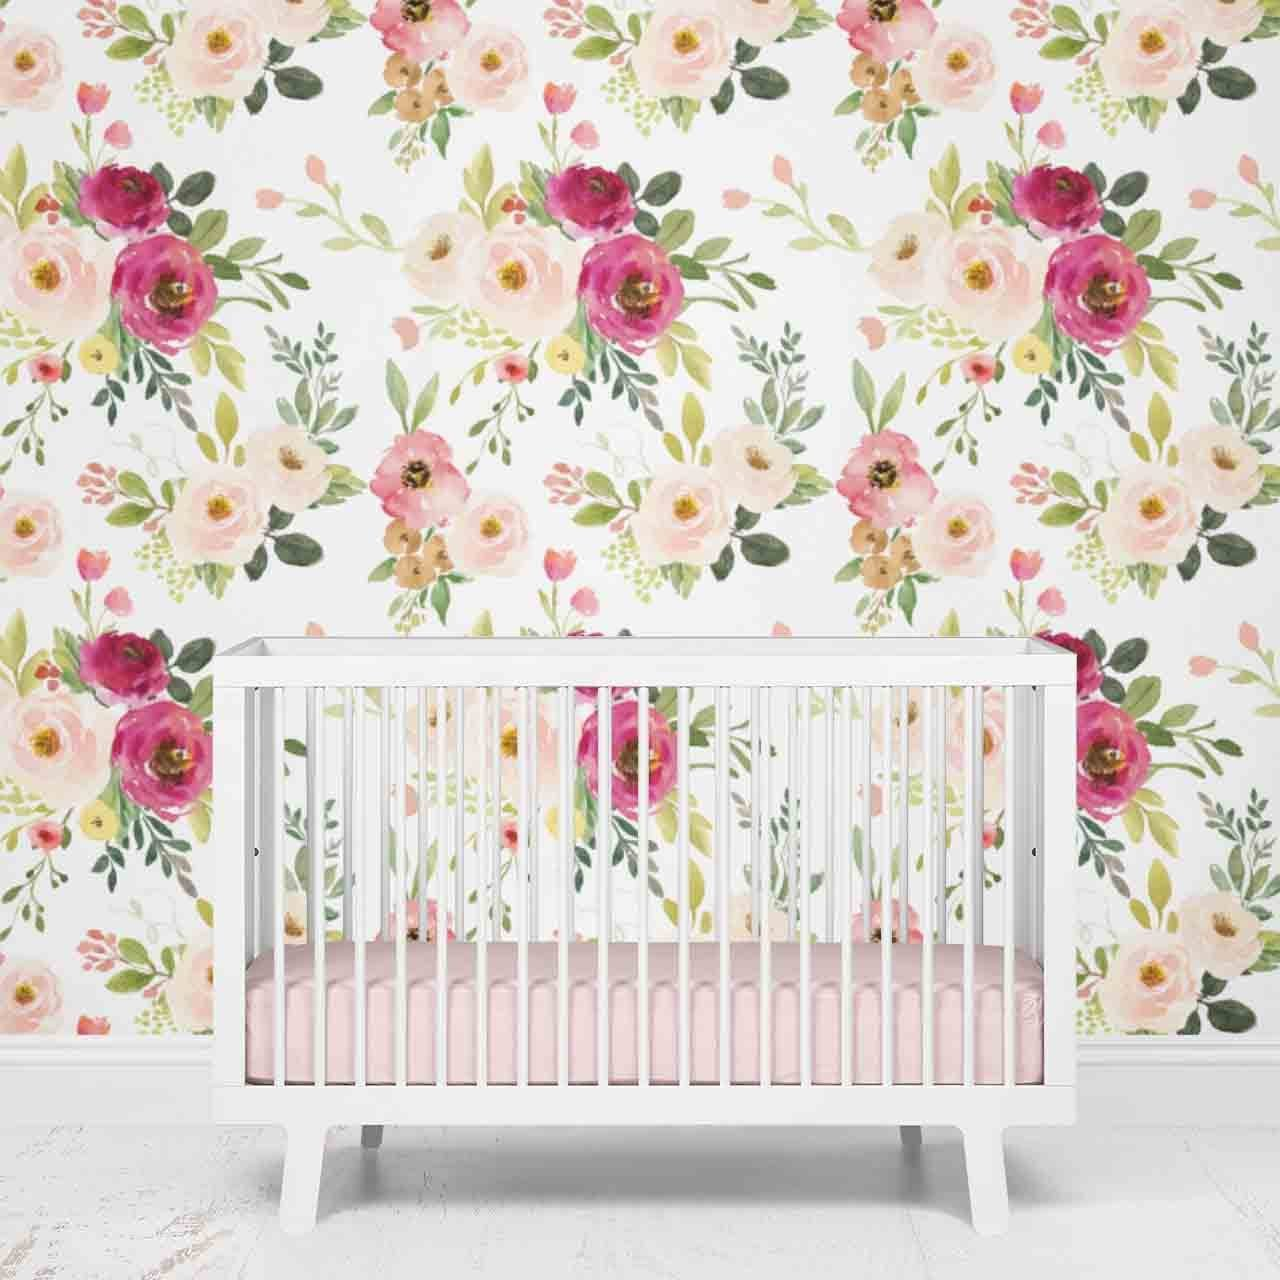 Frannys Farmhouse Floral Removable Wallpaper Caden Lane 1280x1280